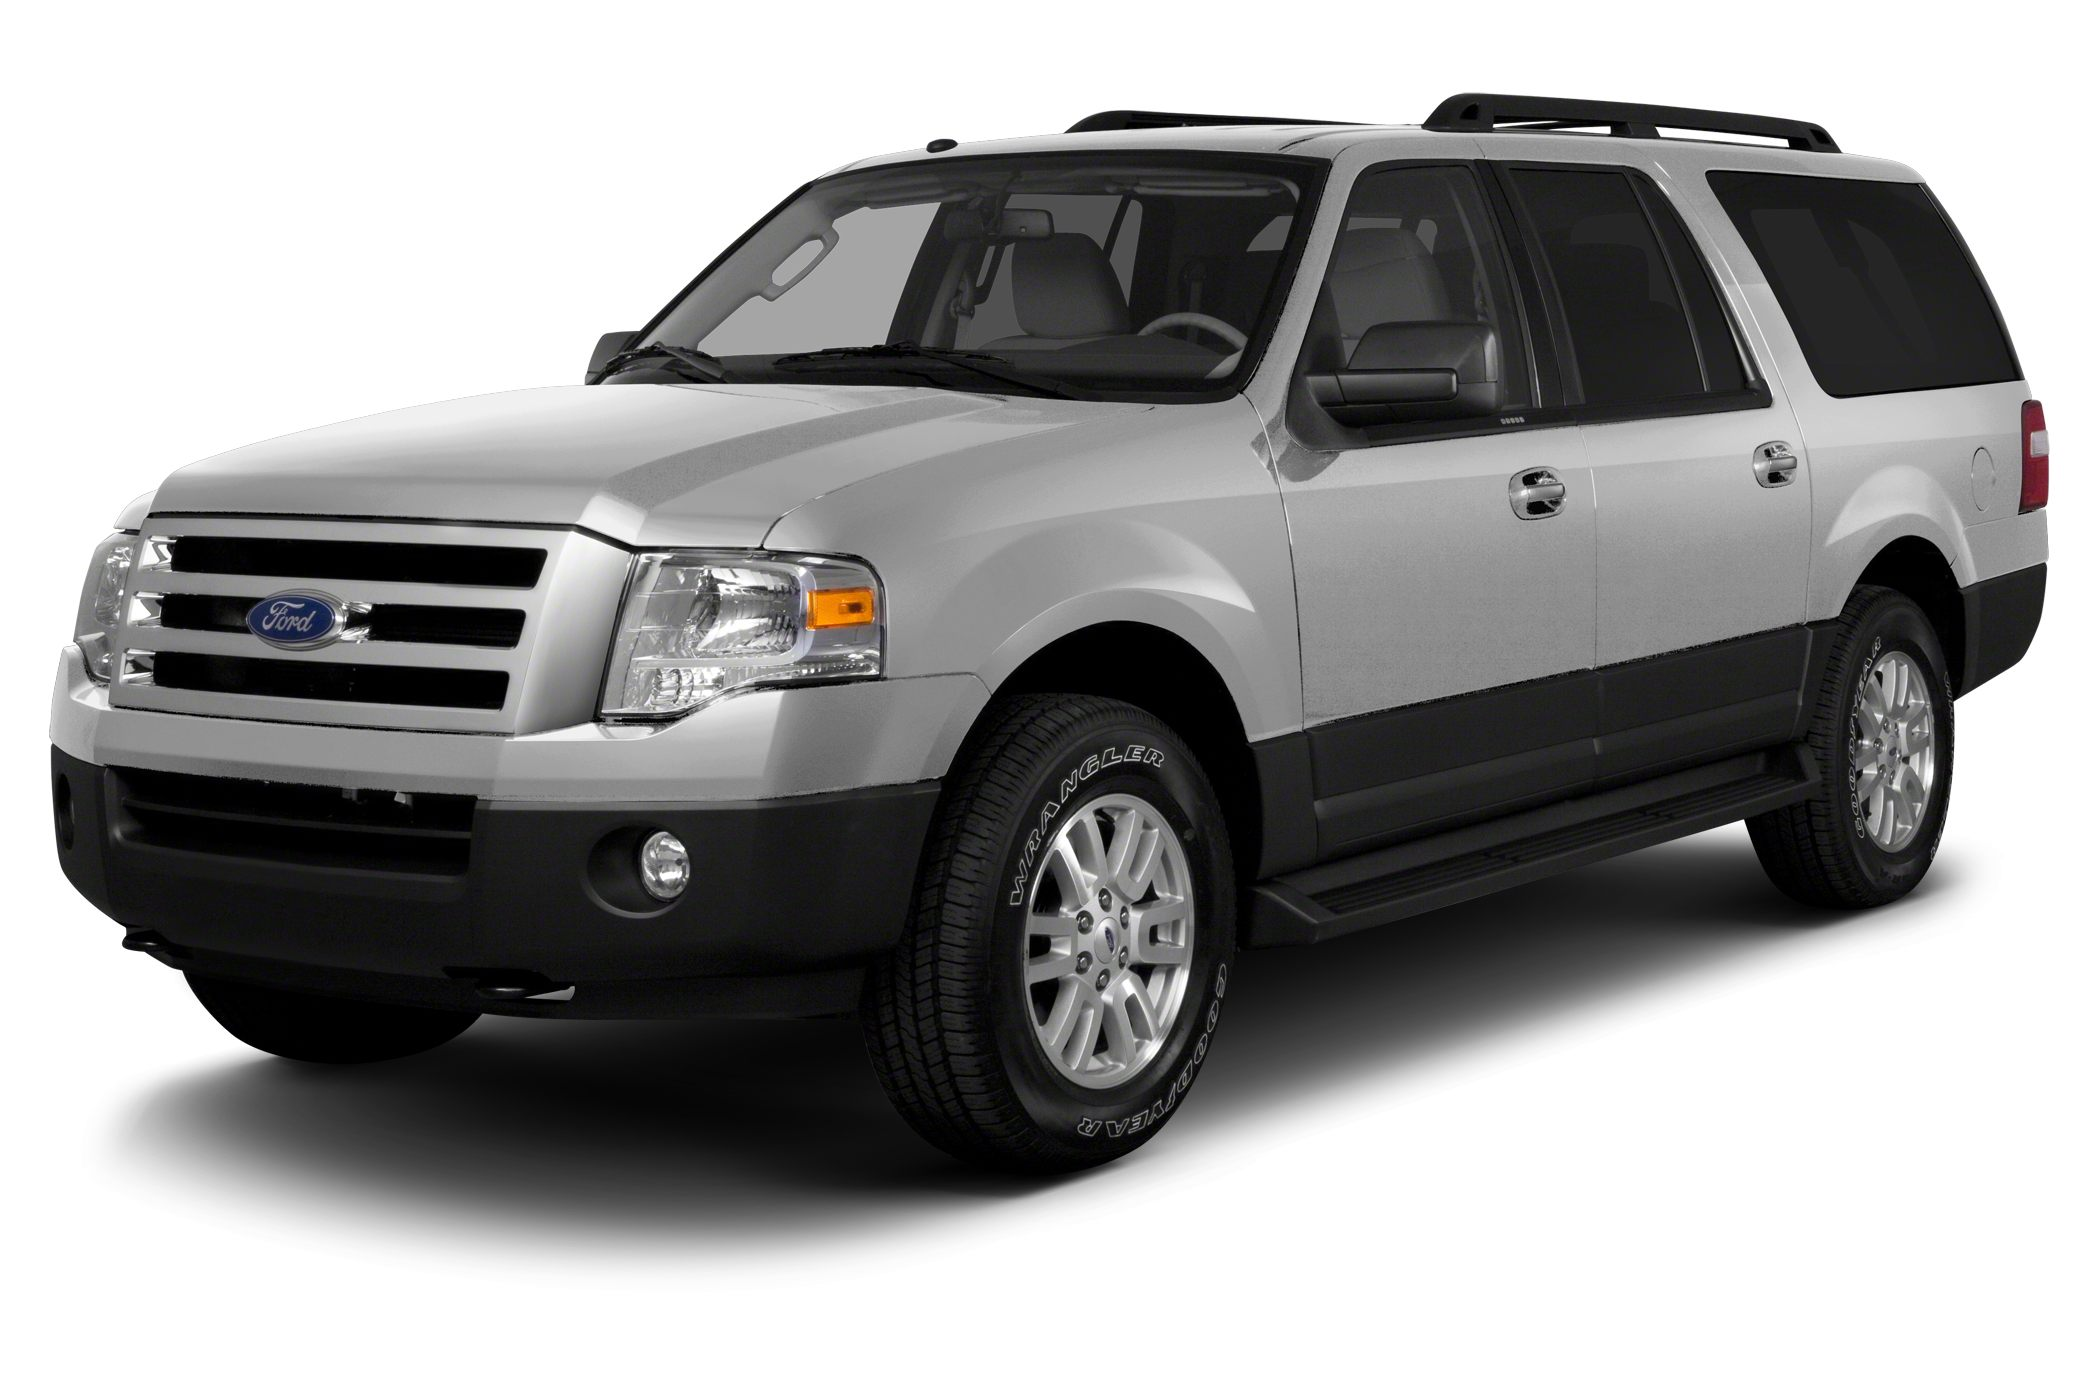 2013 Ford Expedition El Xlt 4dr 4x4 Specs And Prices